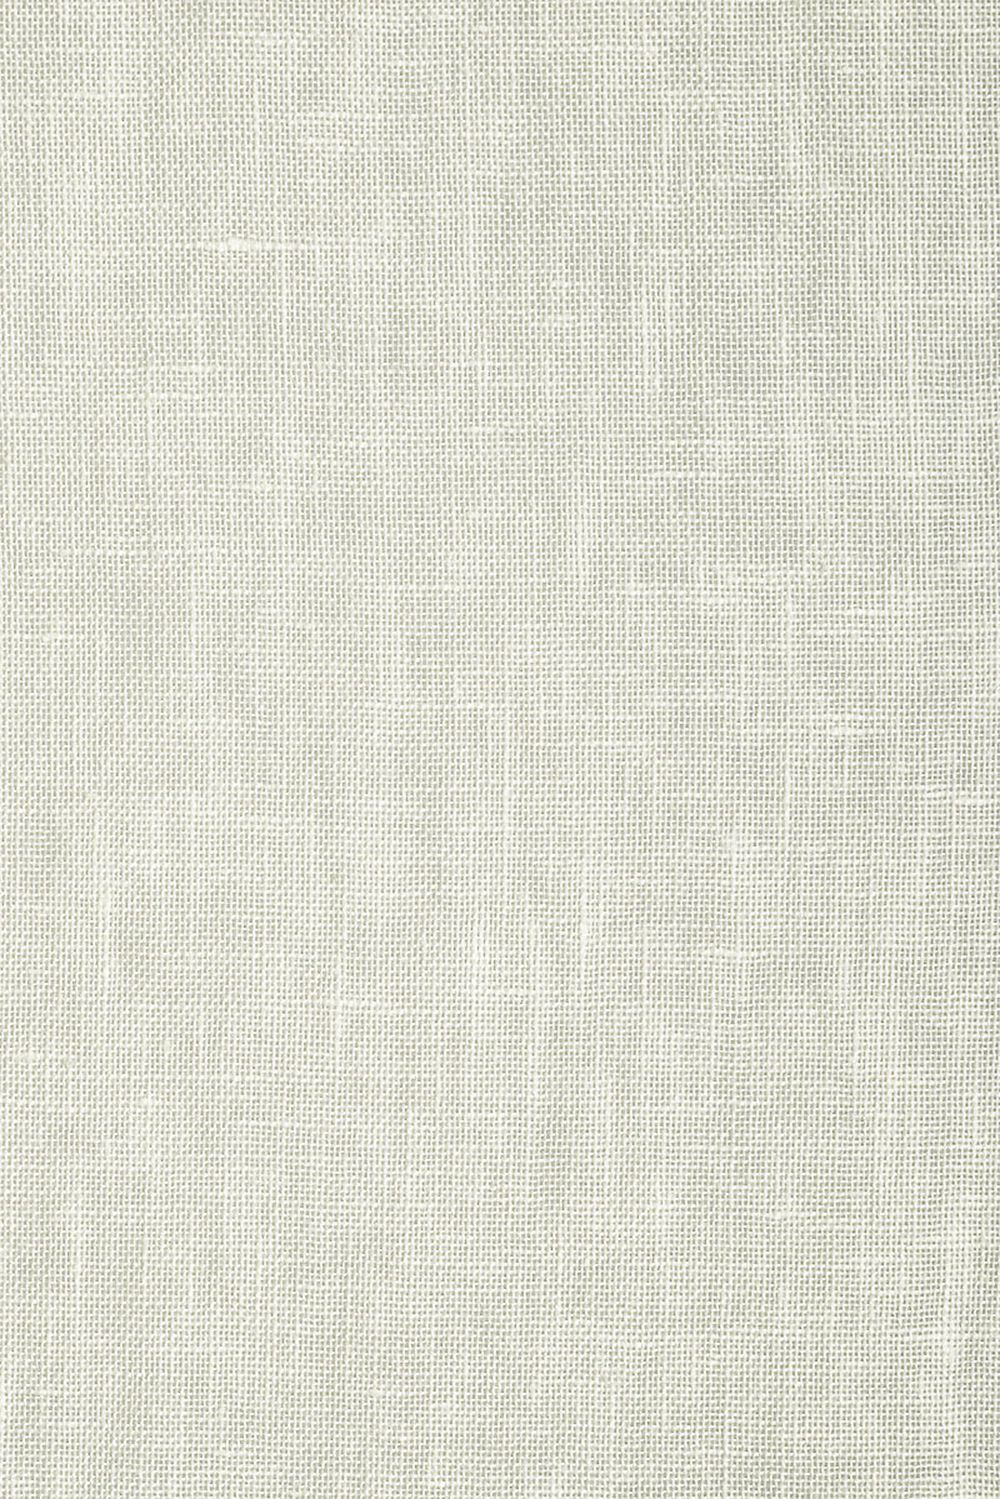 Photo of the fabric Kanso Stonewash Bone swatch by Mokum. Use for Curtains. Style of Plain